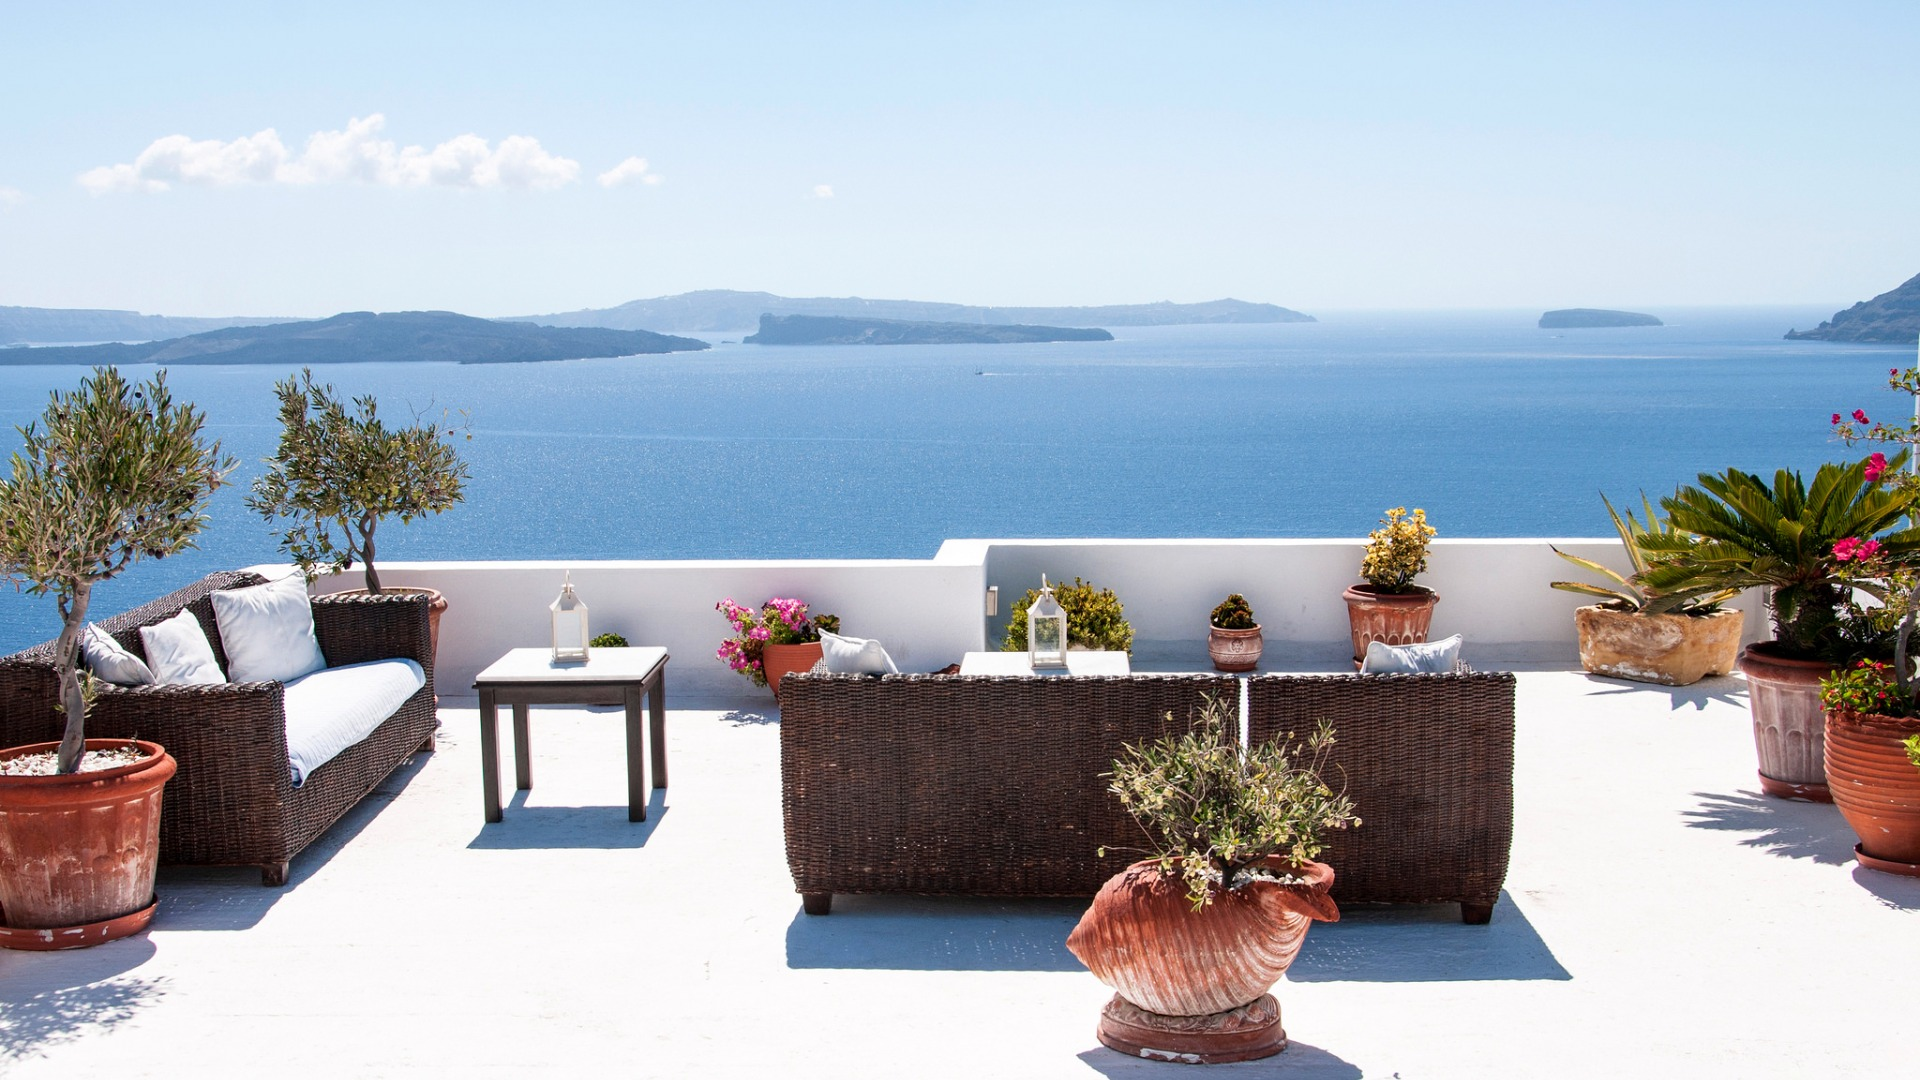 Download-sea-mountains-sofa-stay-Villa-vacation-chair-Santorini-Greece-section-wallpaper-wp3605124